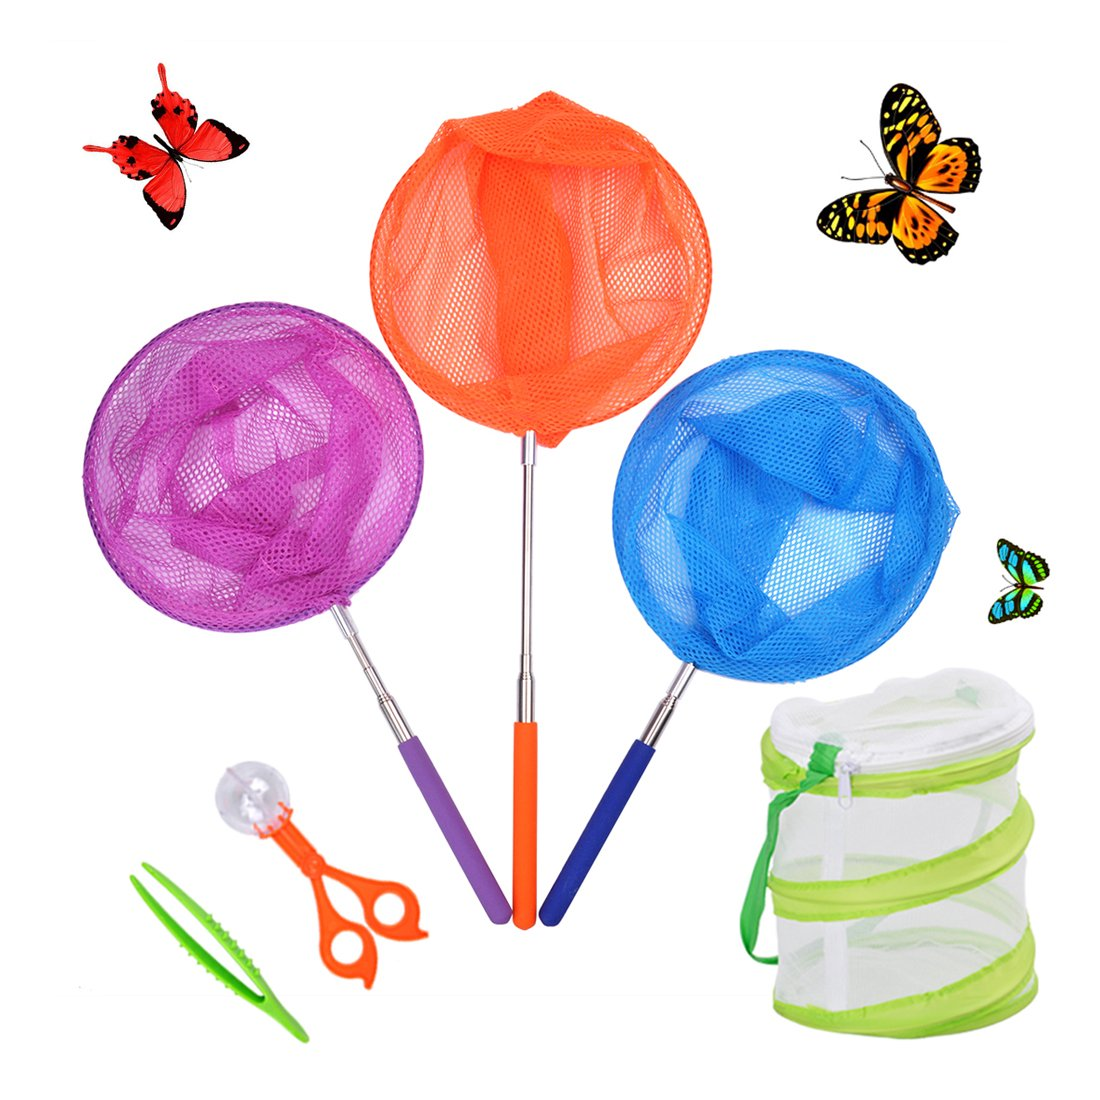 DEWEL Telescopic Butterfly NetKit Kids,3 Pack Bug Insect Catching Net Extendable 34 inch,pop up insect mesh cage,Butterfly Tweezers